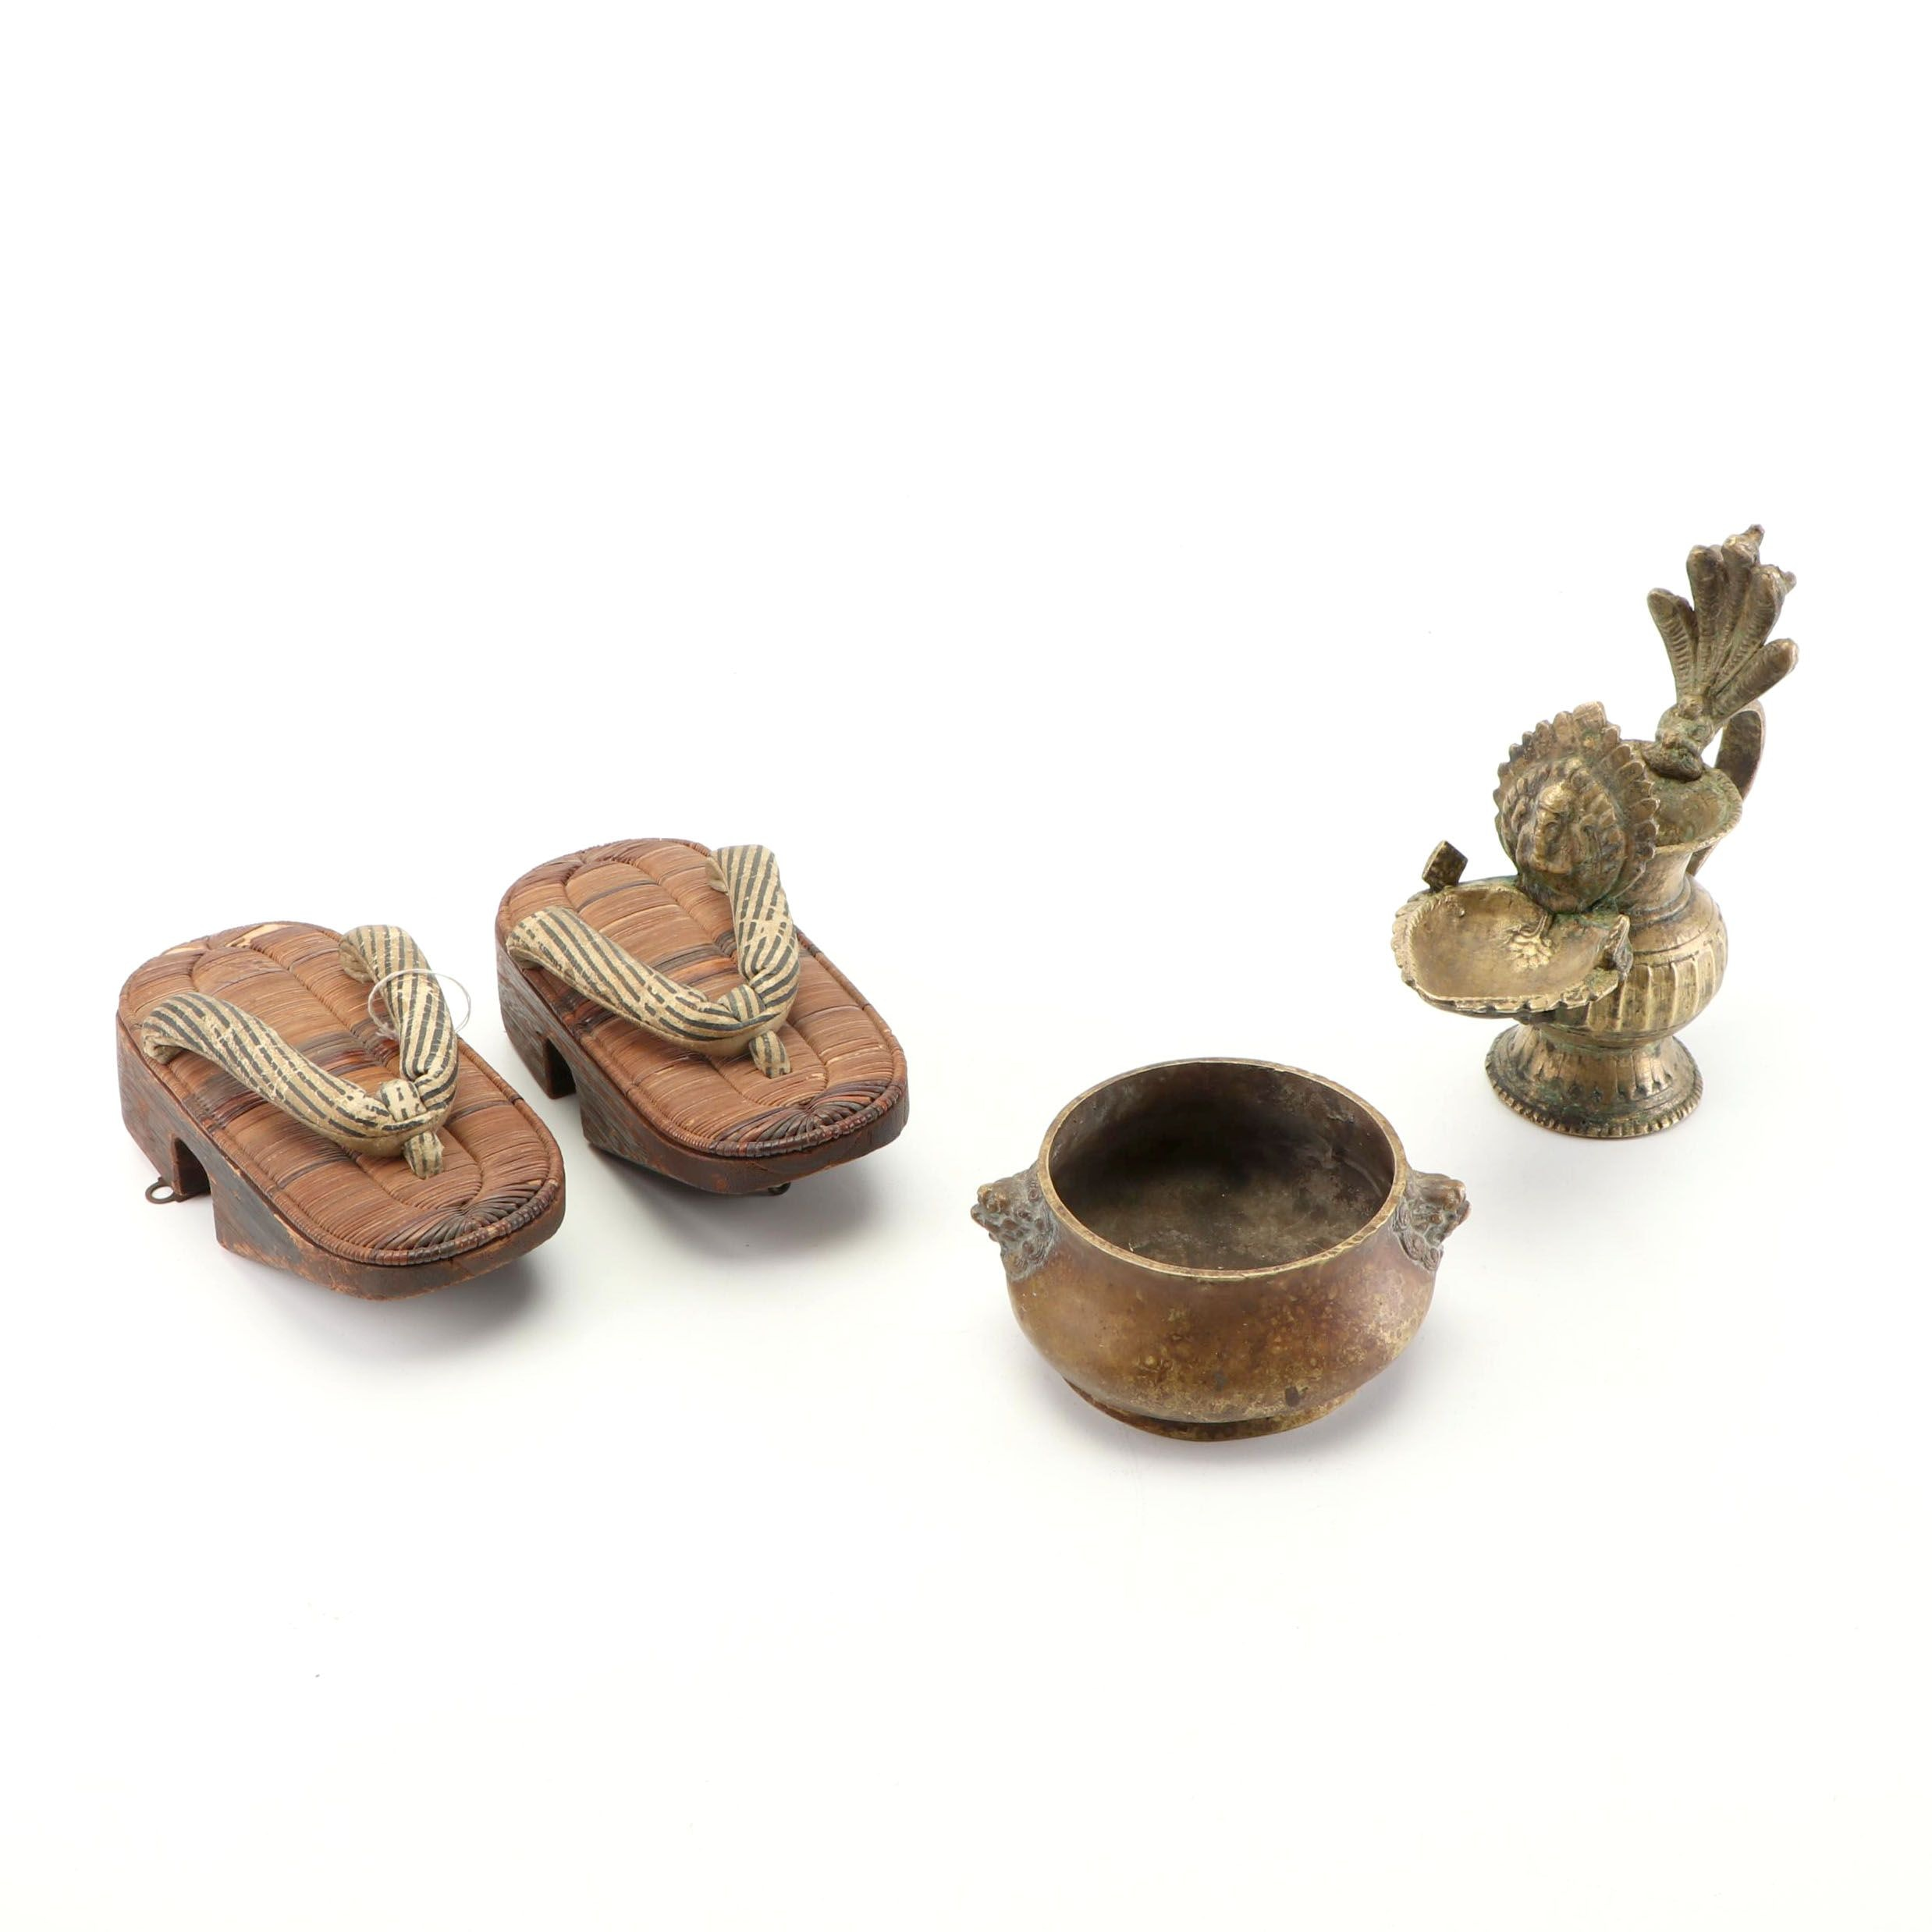 Japanese Geta Sandals with Chinese Censer and Indian Butter Lamp